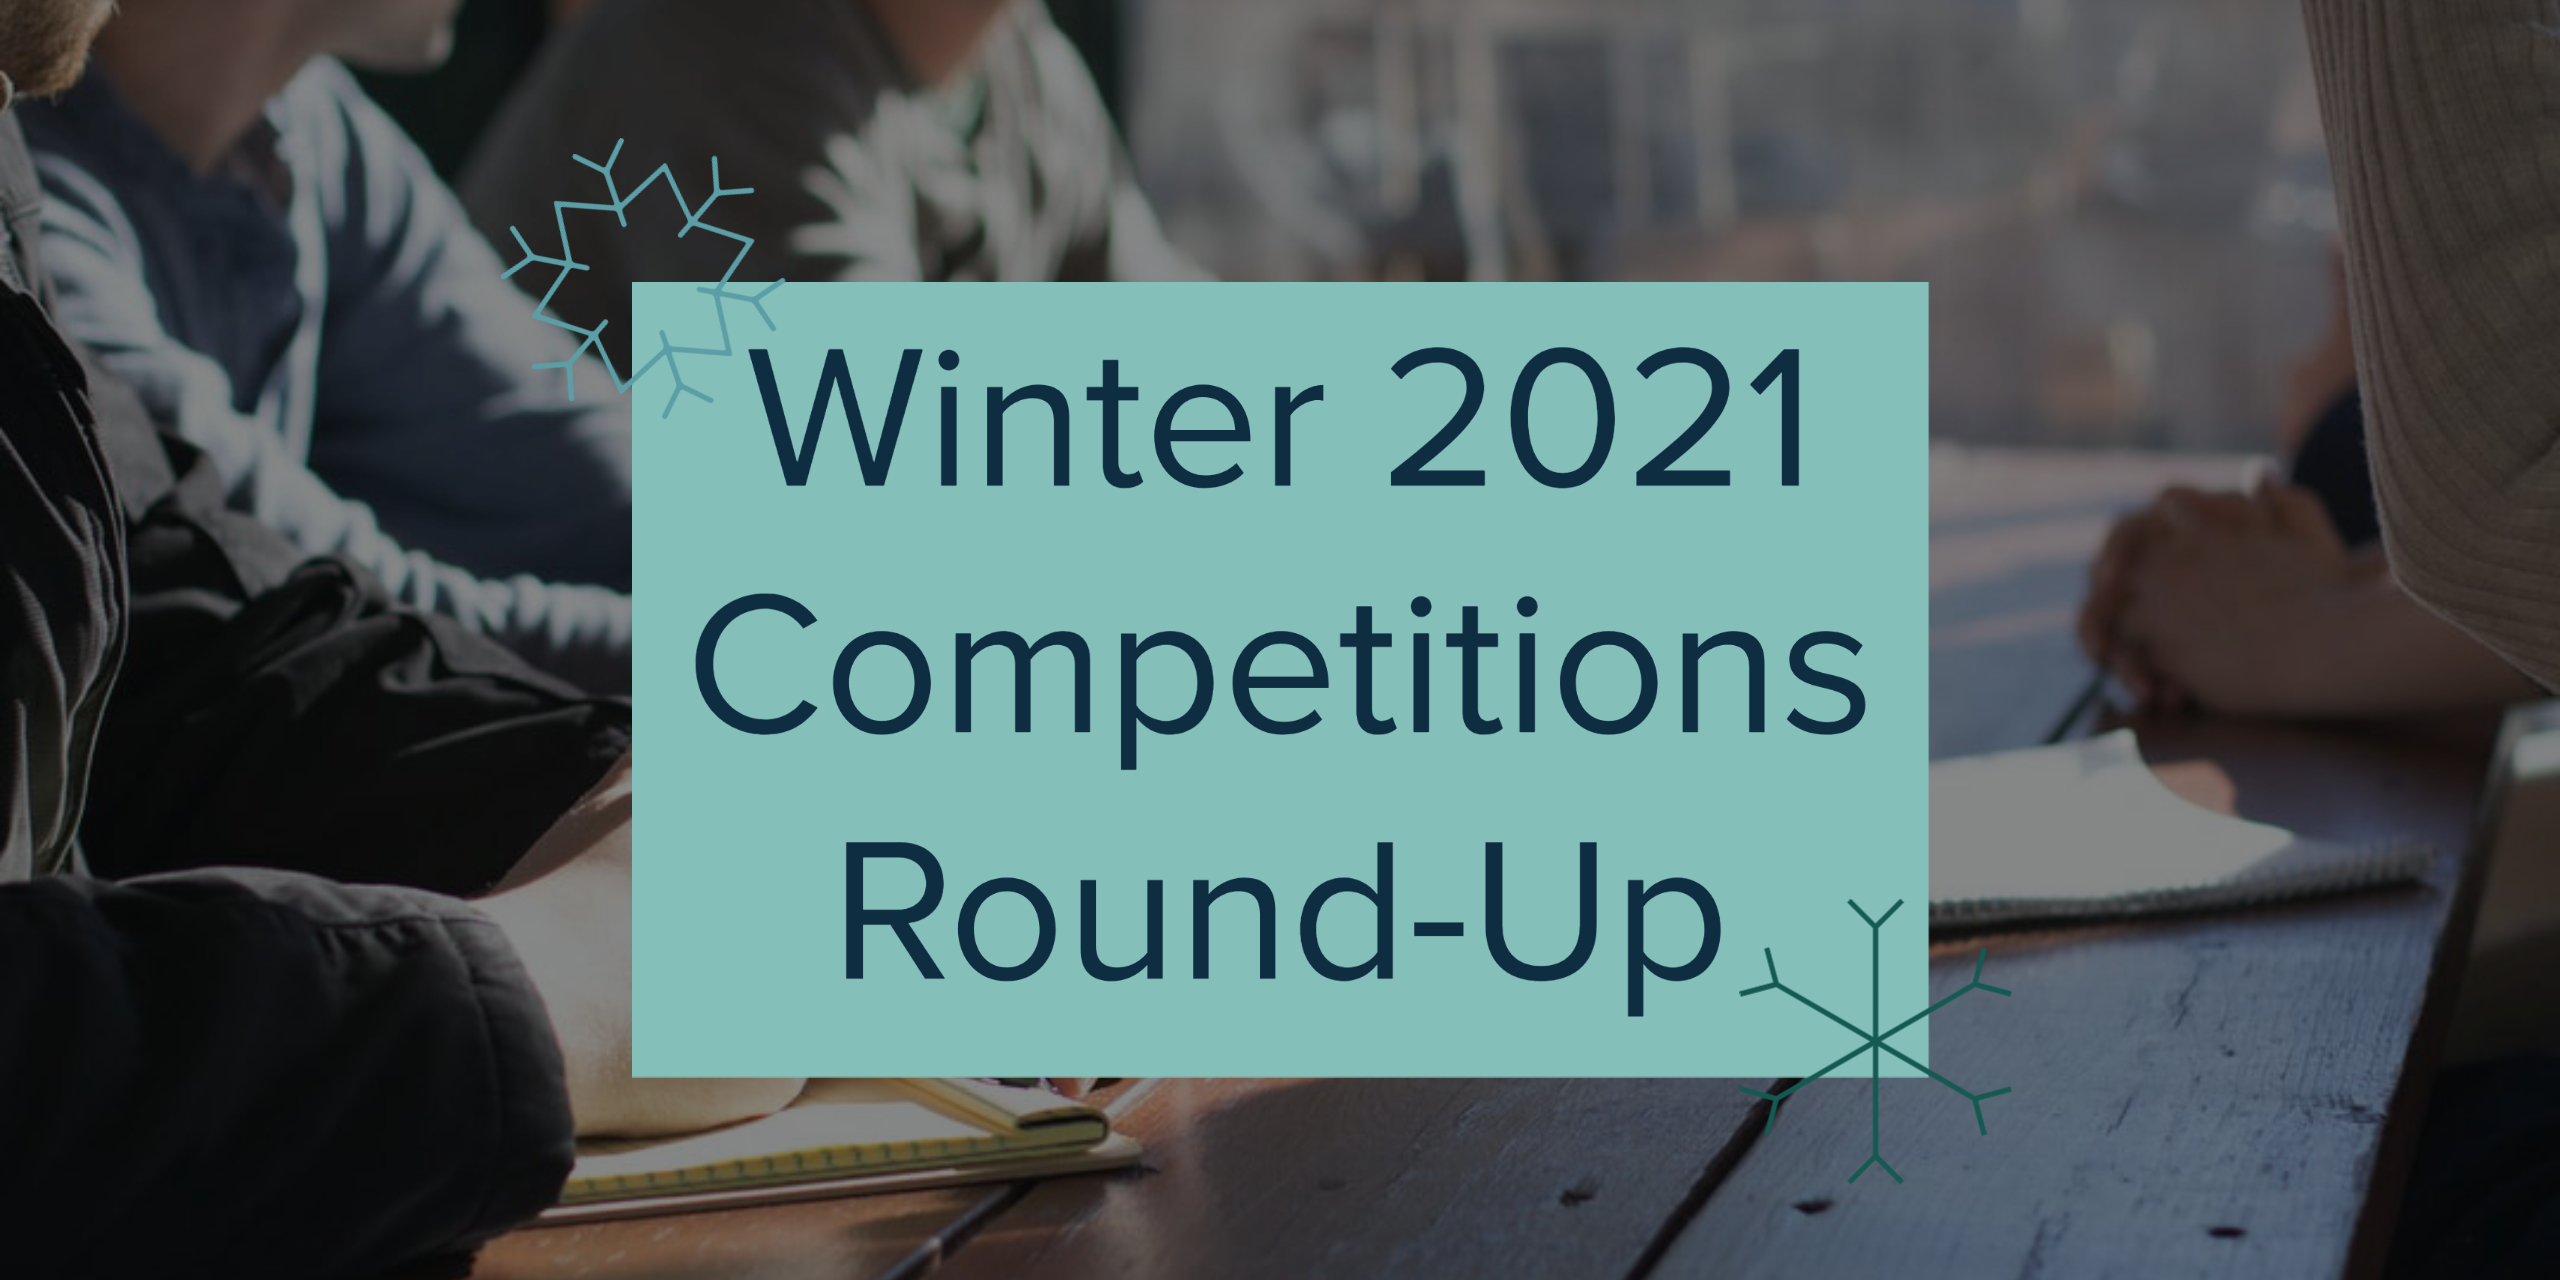 Conrad School Competitions Round-Up - Winter 2021